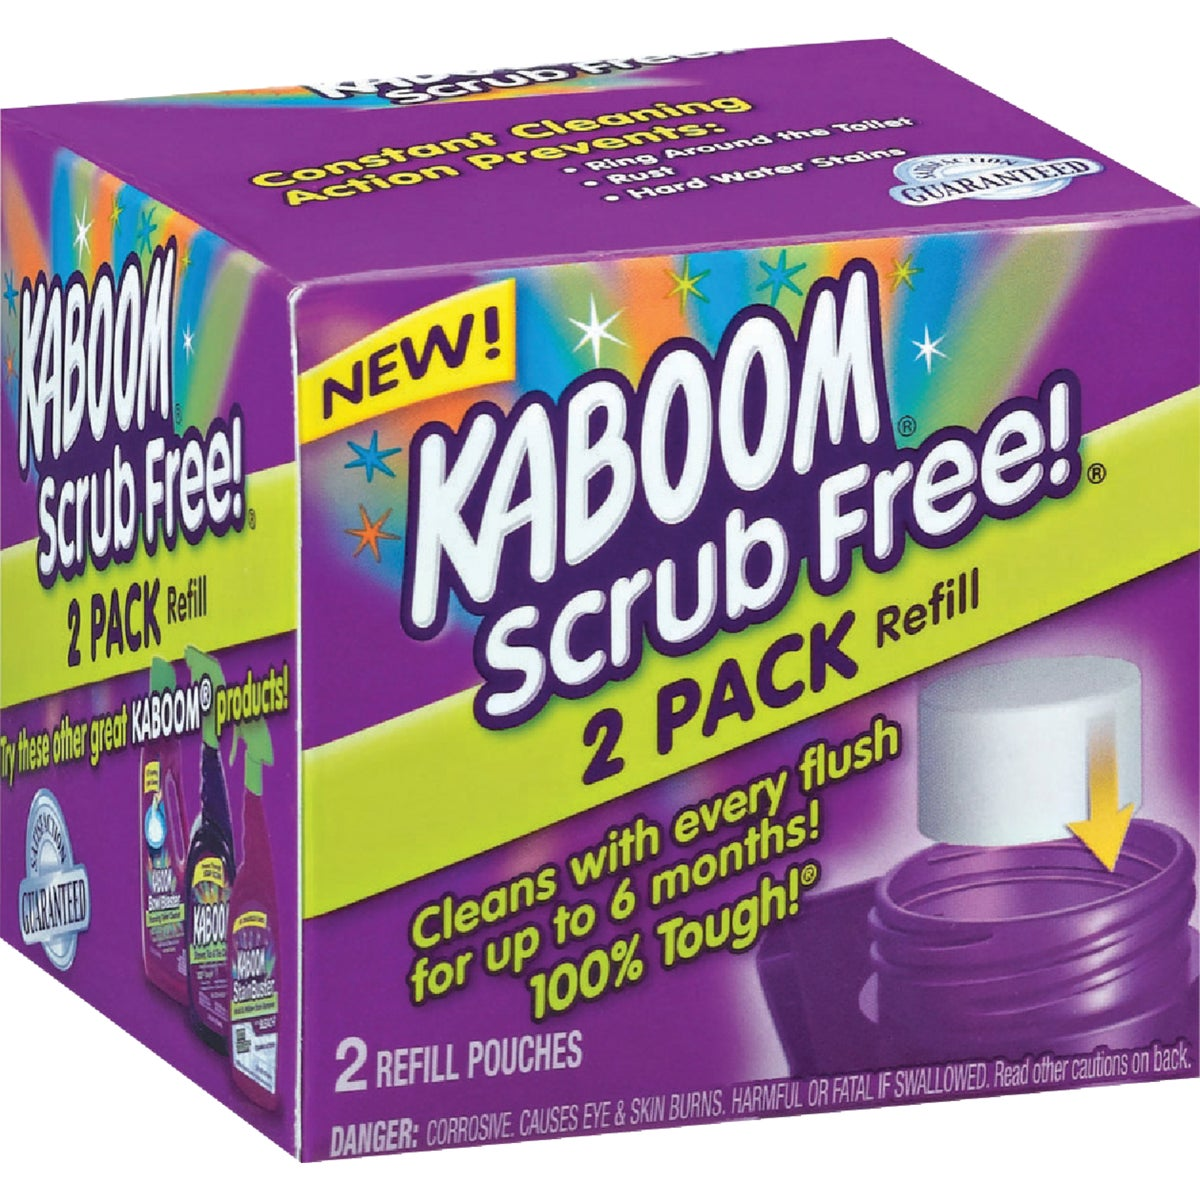 KABOOM Toilet Cleaner Refill